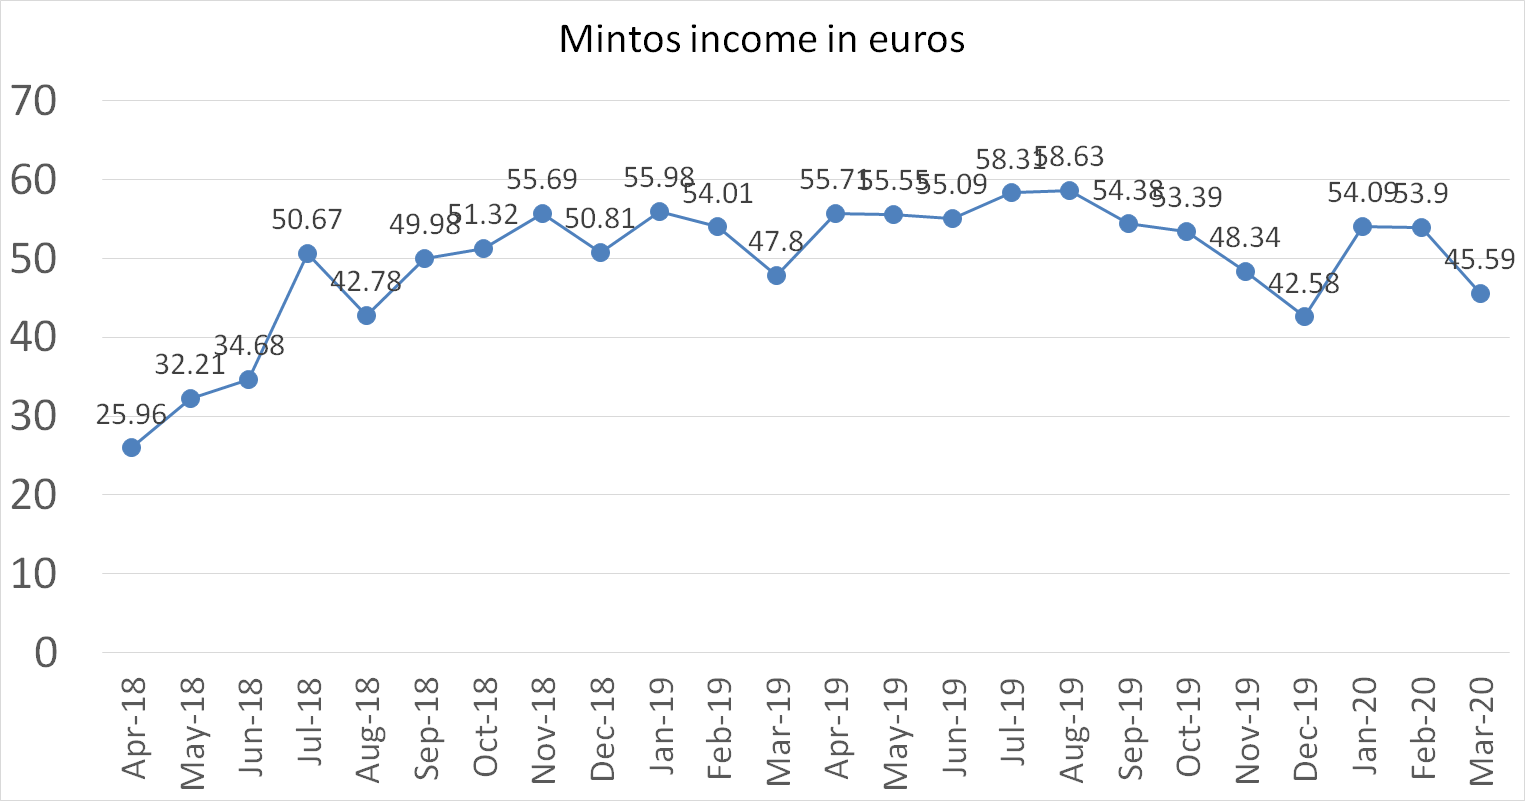 Mintos interest income in march 2020